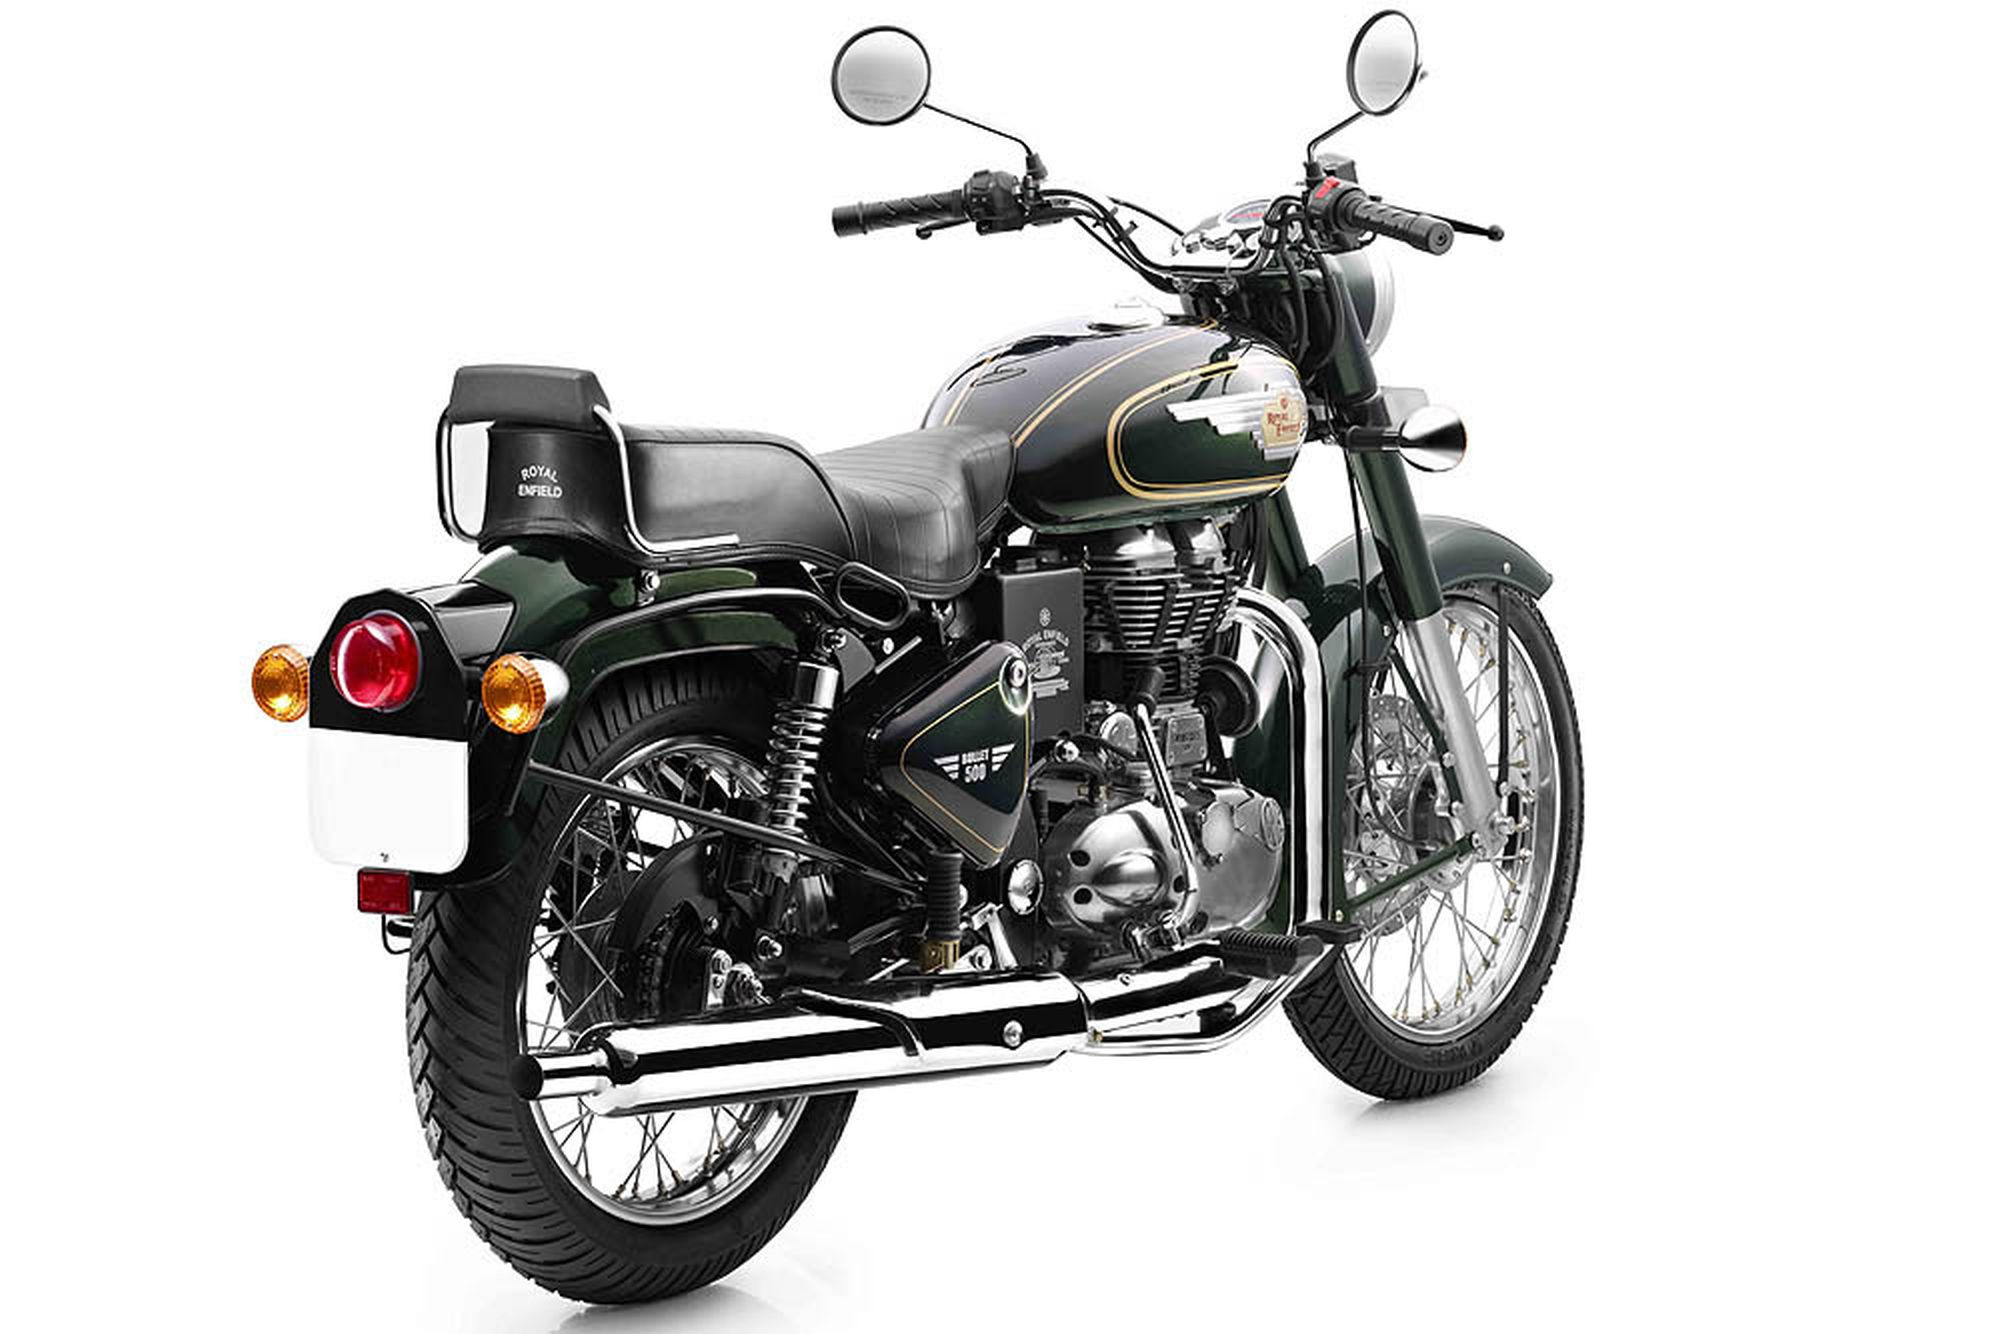 Royal Enfield Bullet 500 S Clubman 2001 images #122988